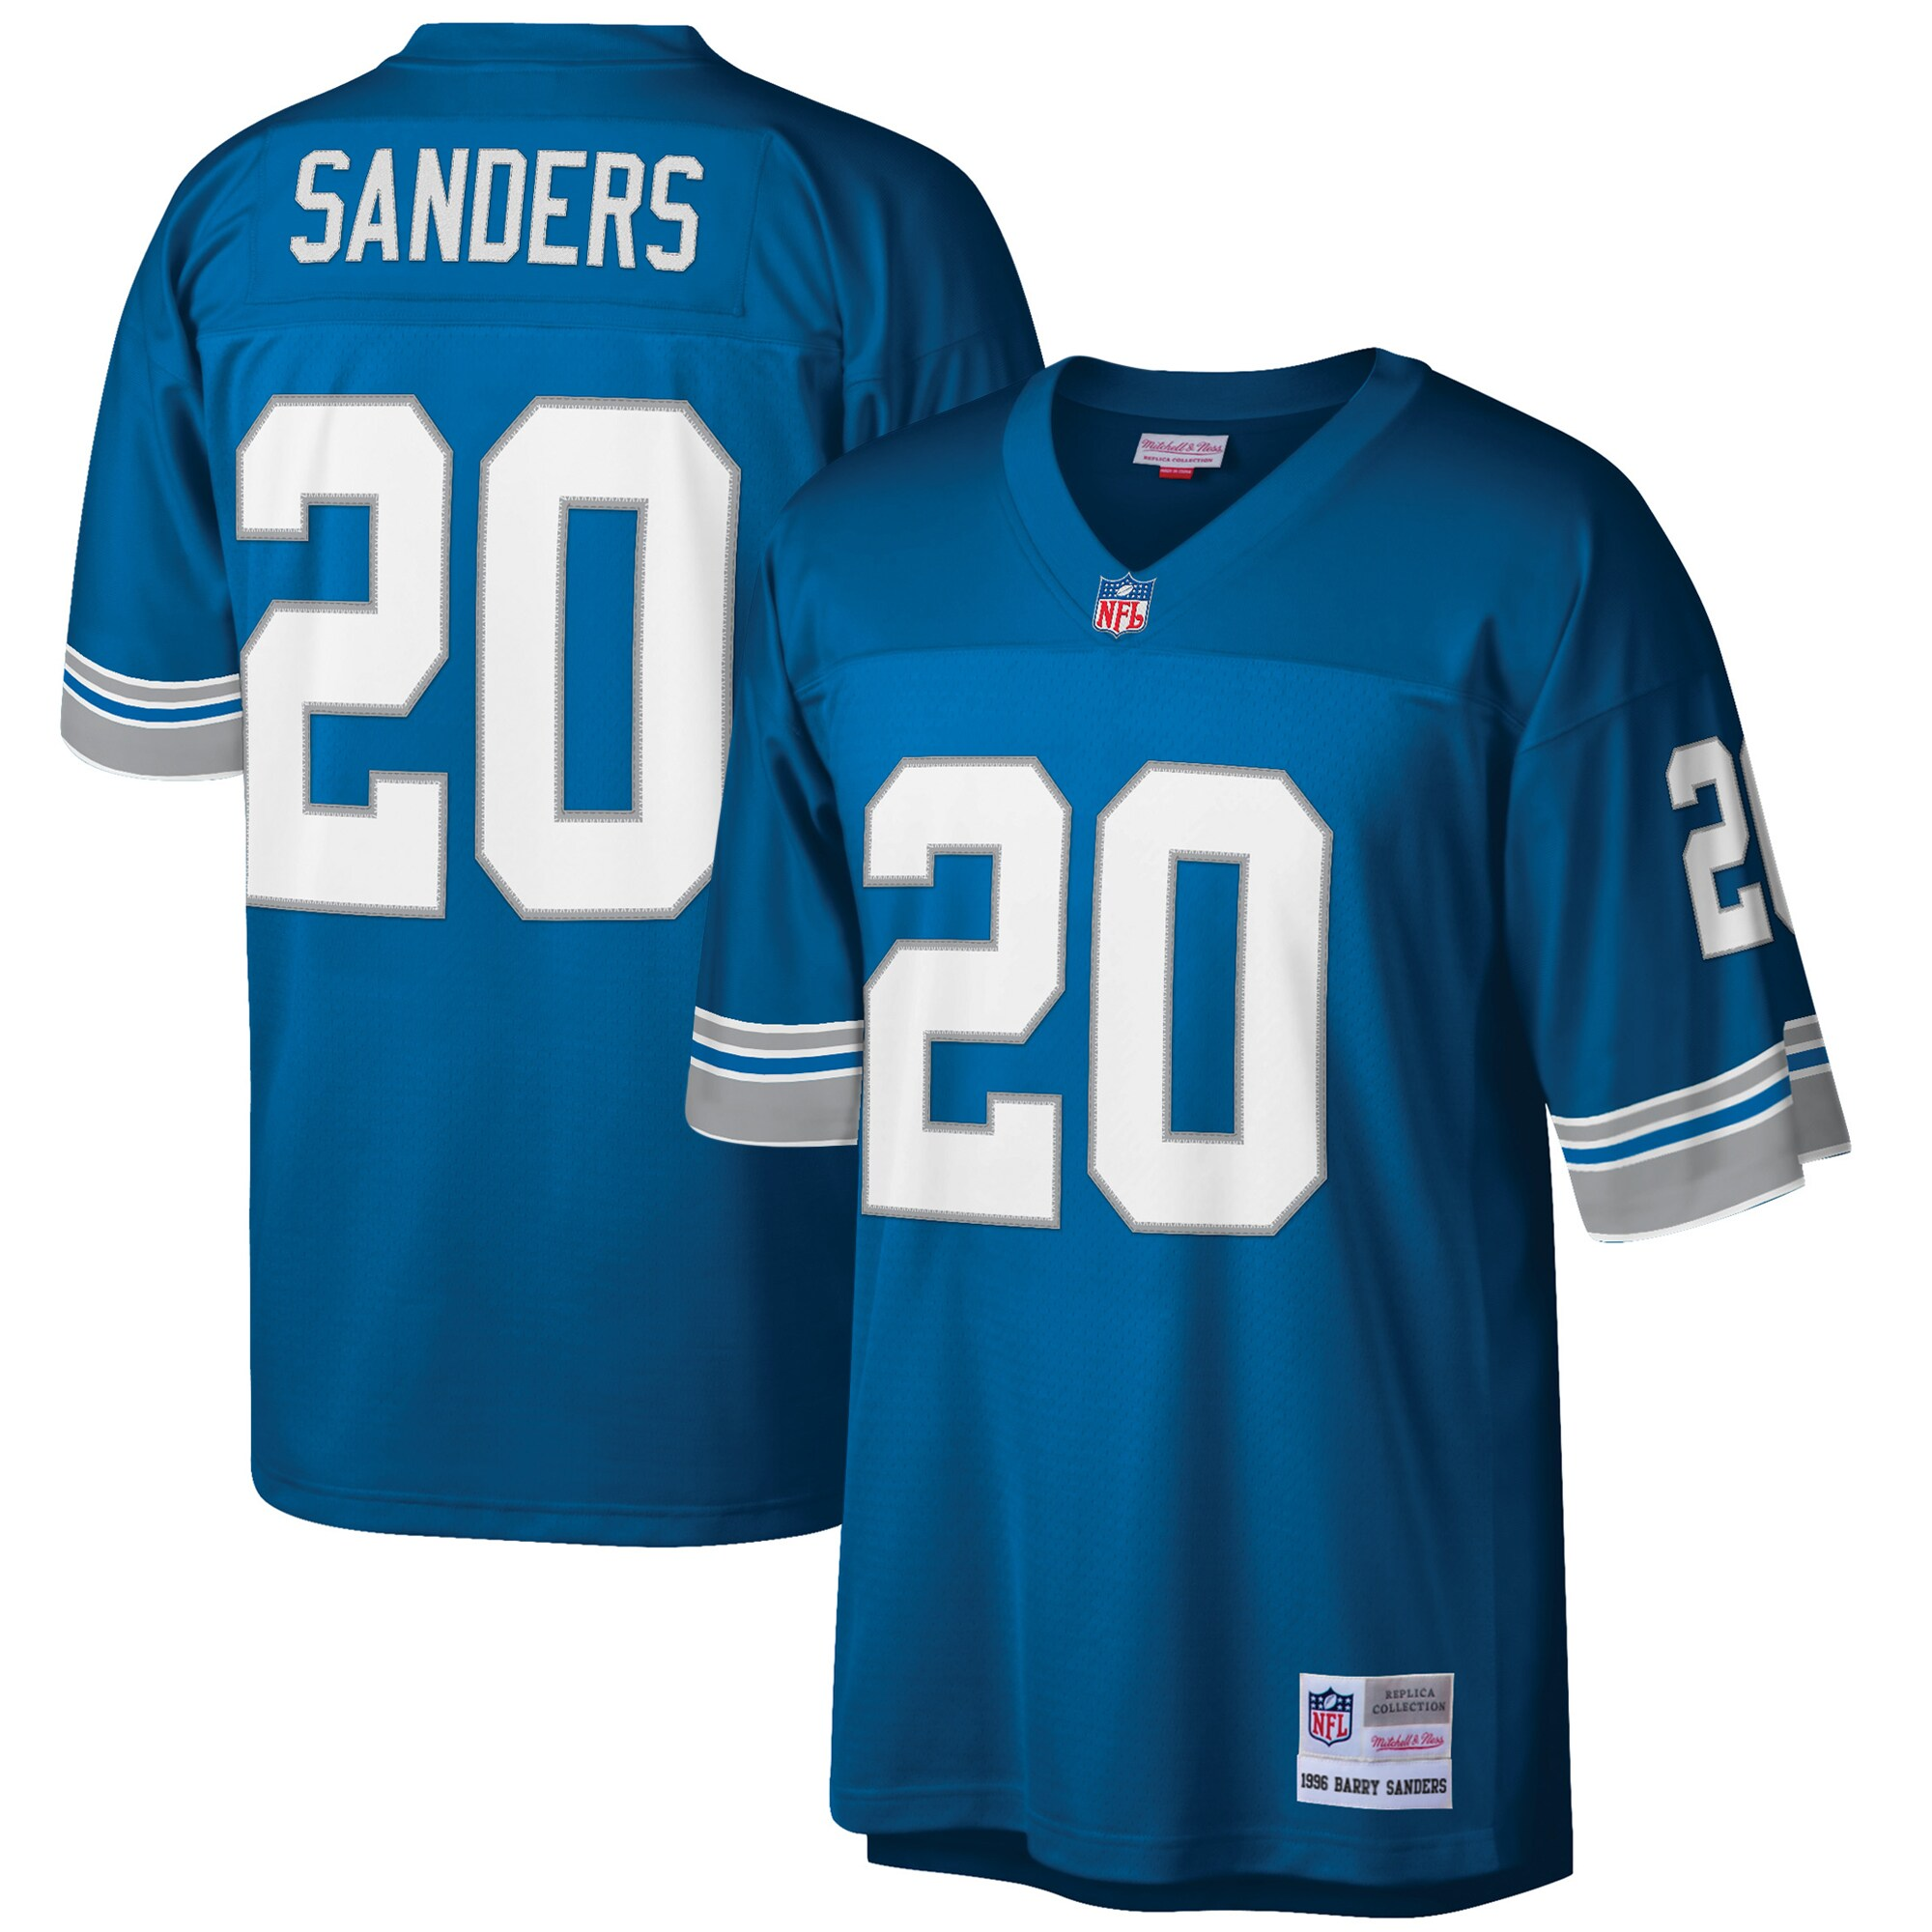 Barry Sanders Detroit Lions Mitchell & Ness Big & Tall 1996 Retired Player Replica Jersey - Blue